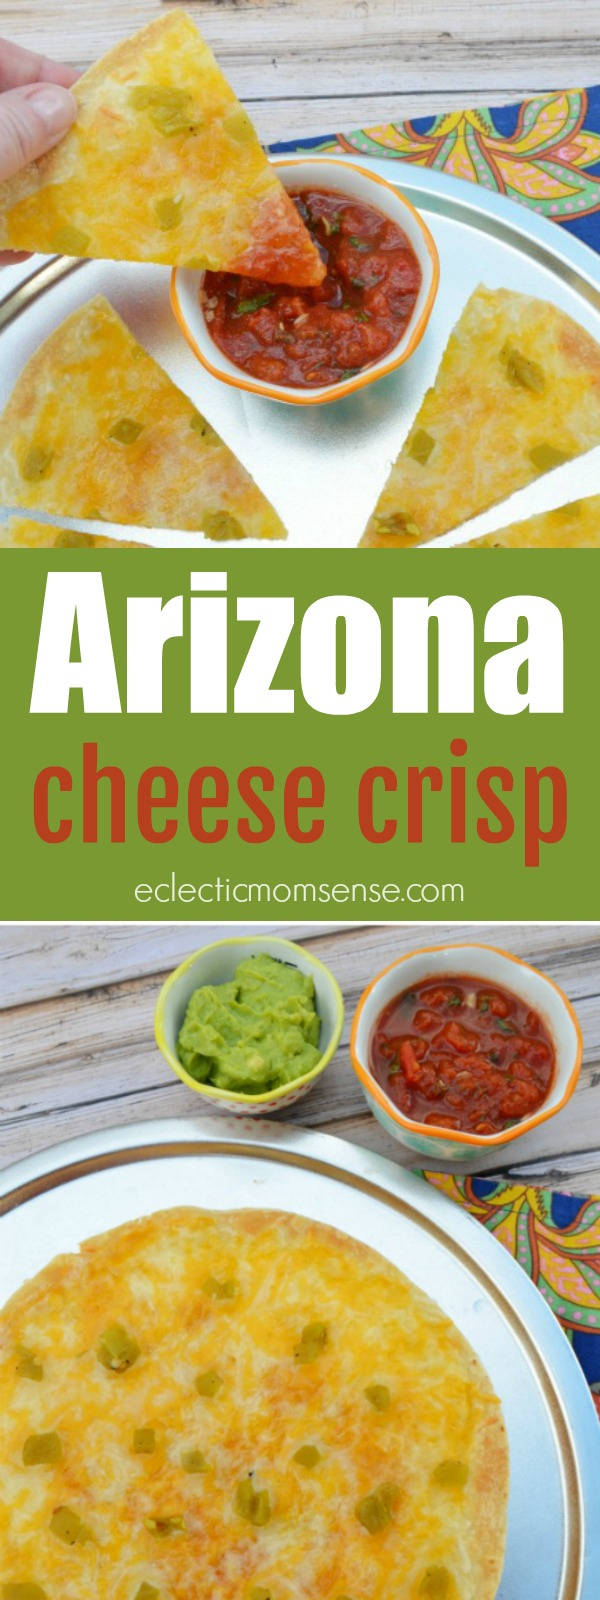 What is an Arizona Cheese Crisp?  Find out here how to make the regional variety.